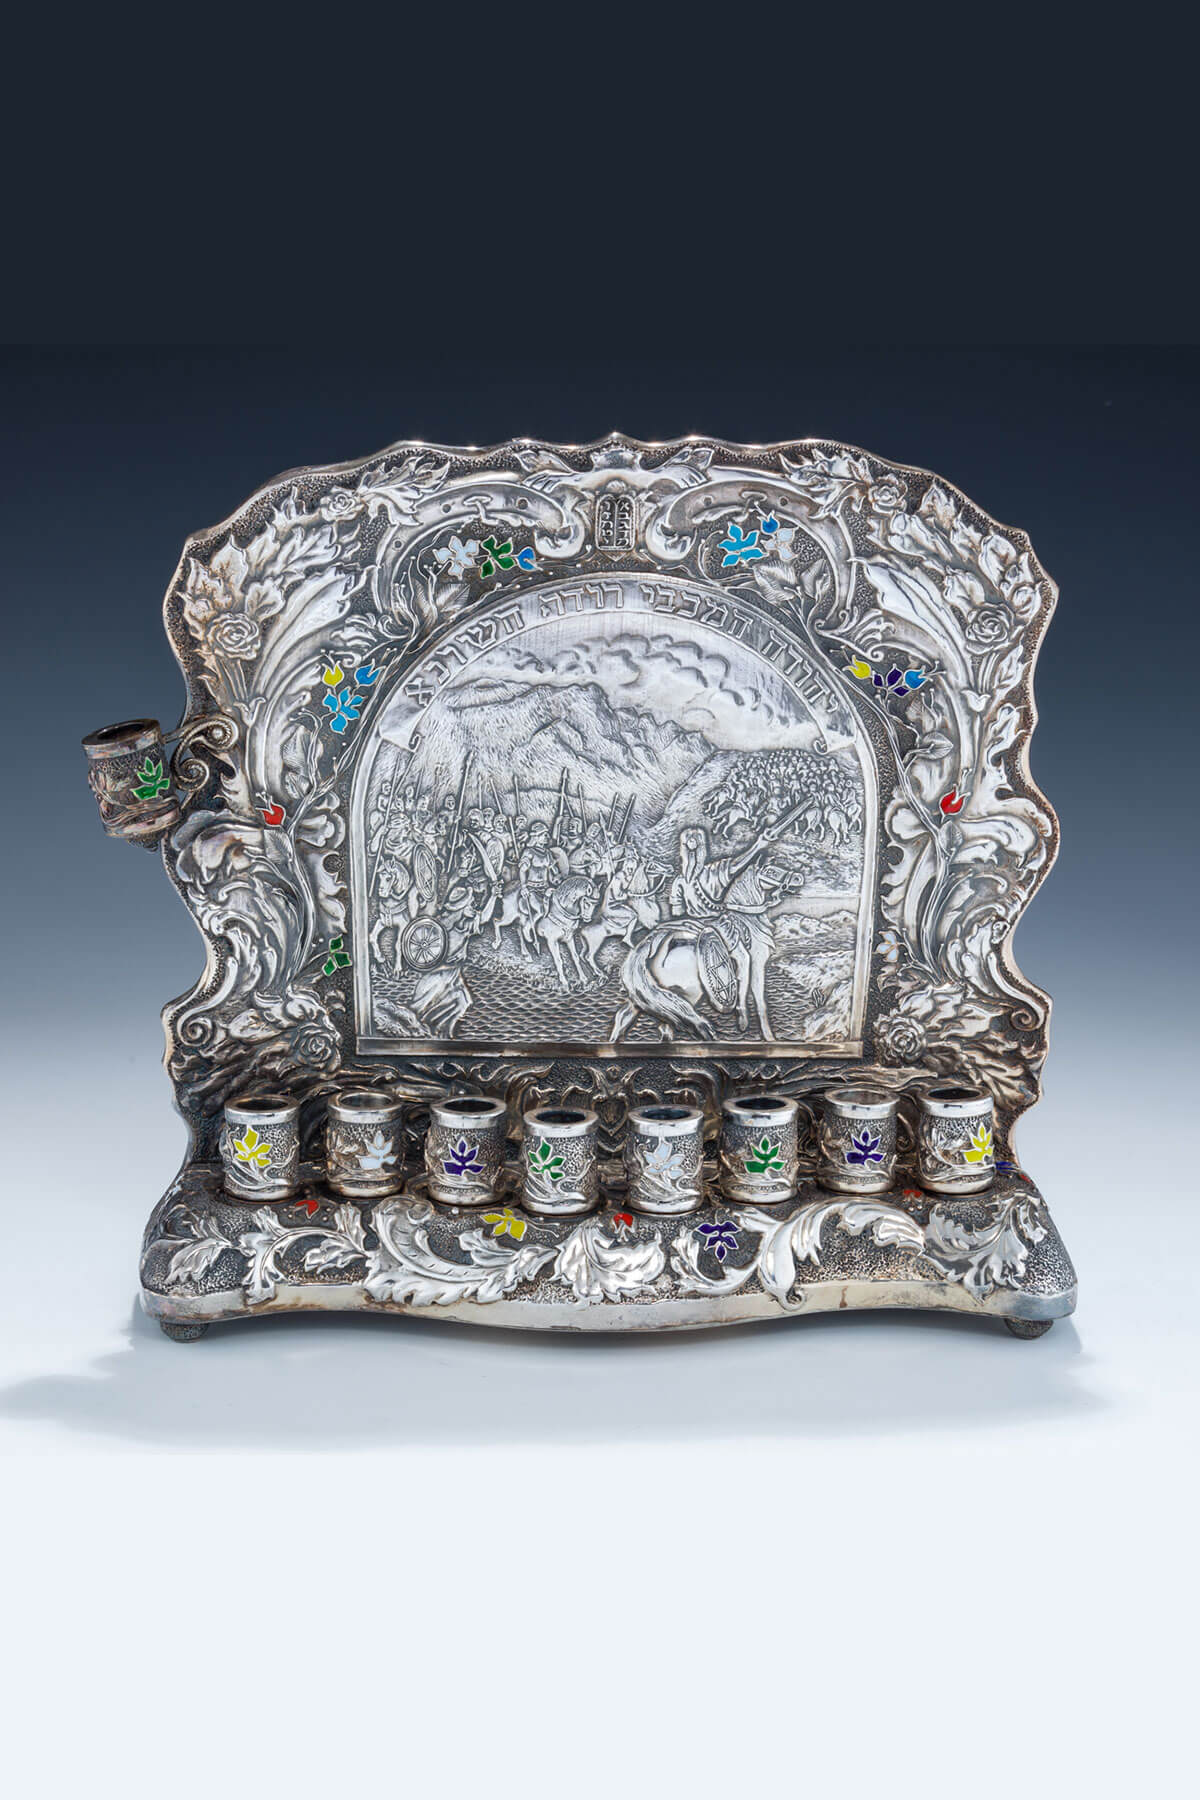 152. A Silver And Enamel Chanukah Lamp by Henryk Winograd